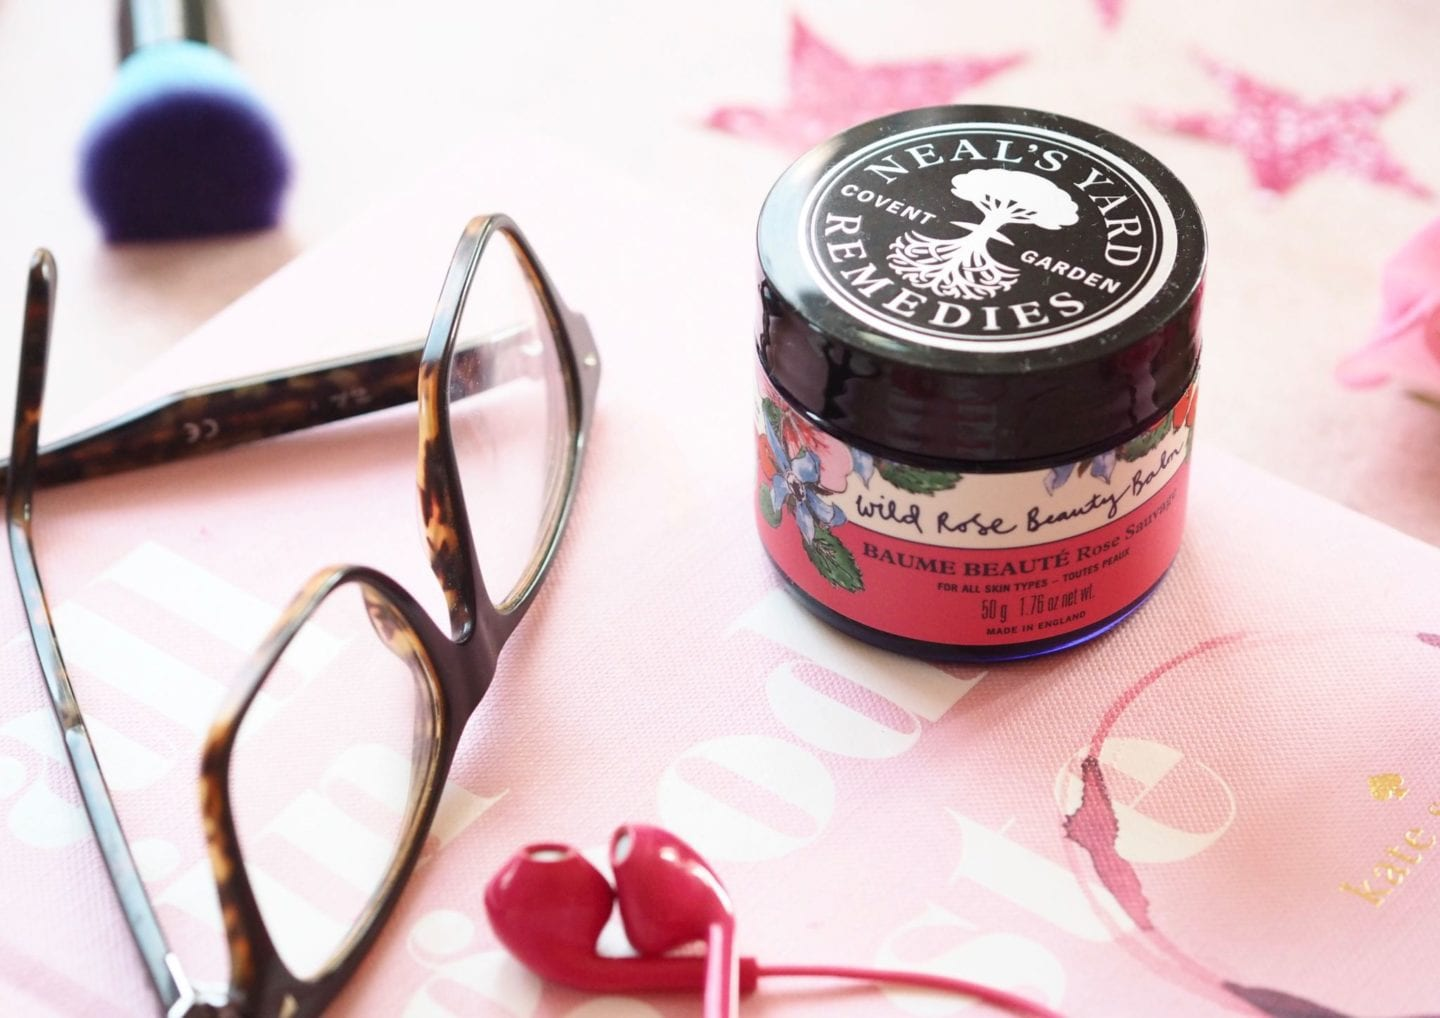 Neal's Yard Remedies 'Wild Rose Beauty Balm'